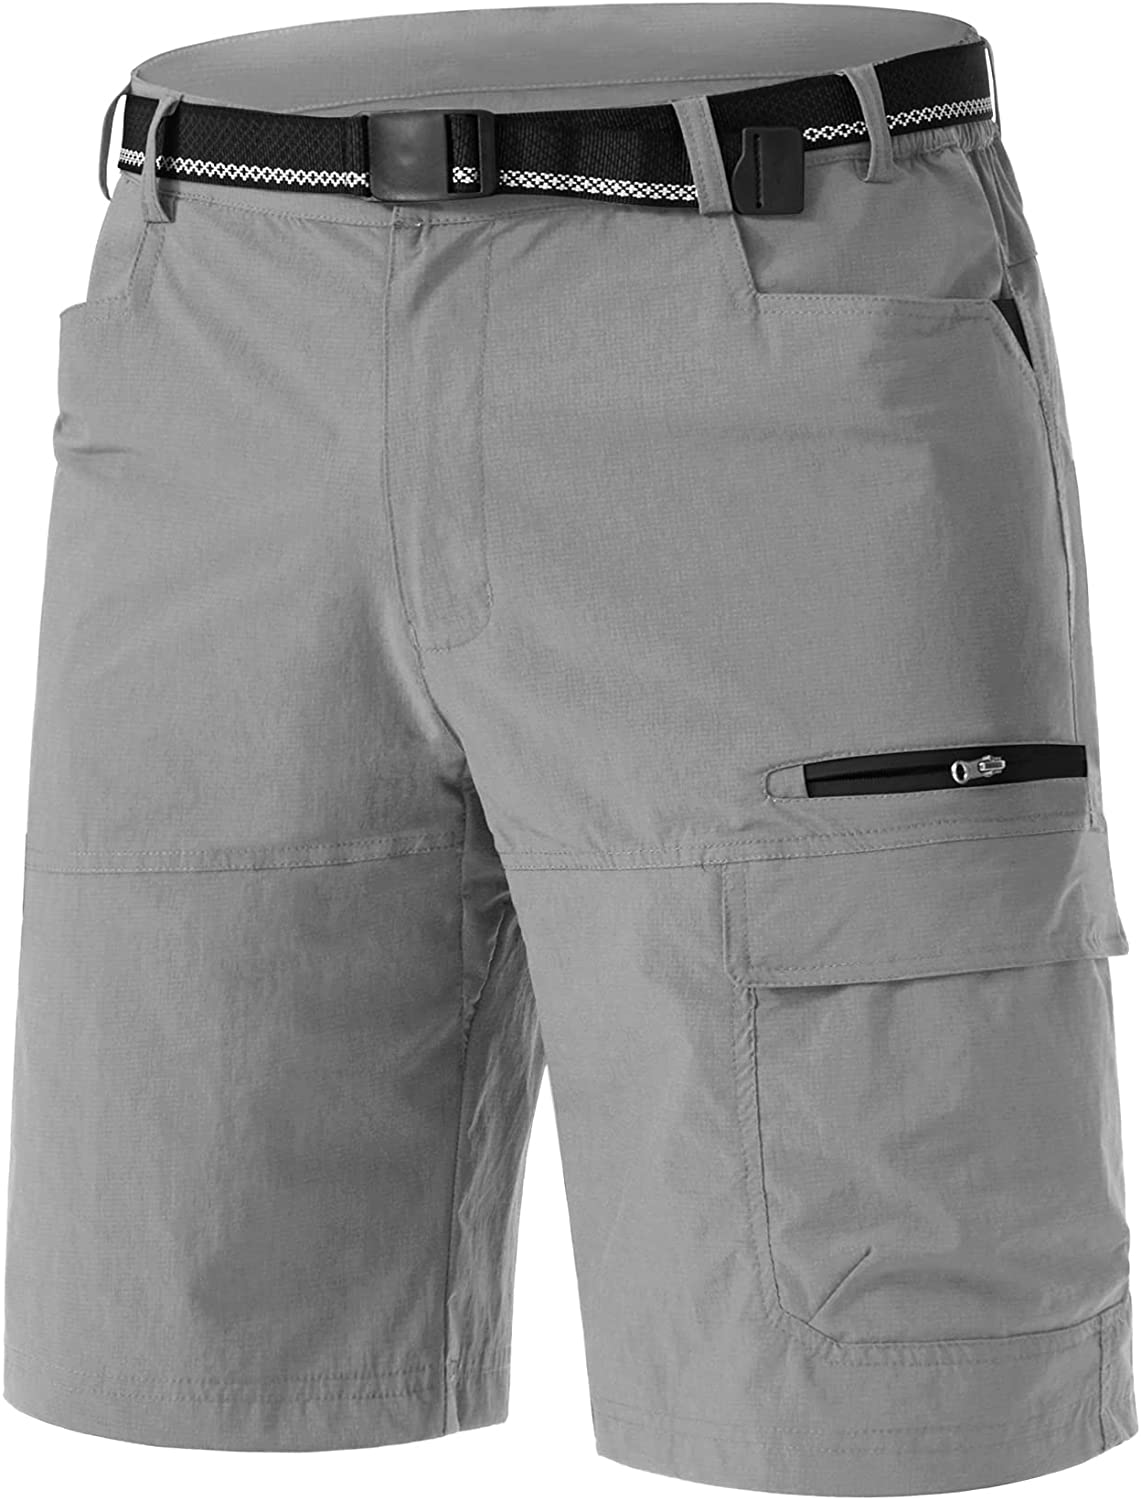 TACVASEN Men's Summer Outdoor Animer and price revision overseas Shorts Cargo Quick Casual Dry Hiki